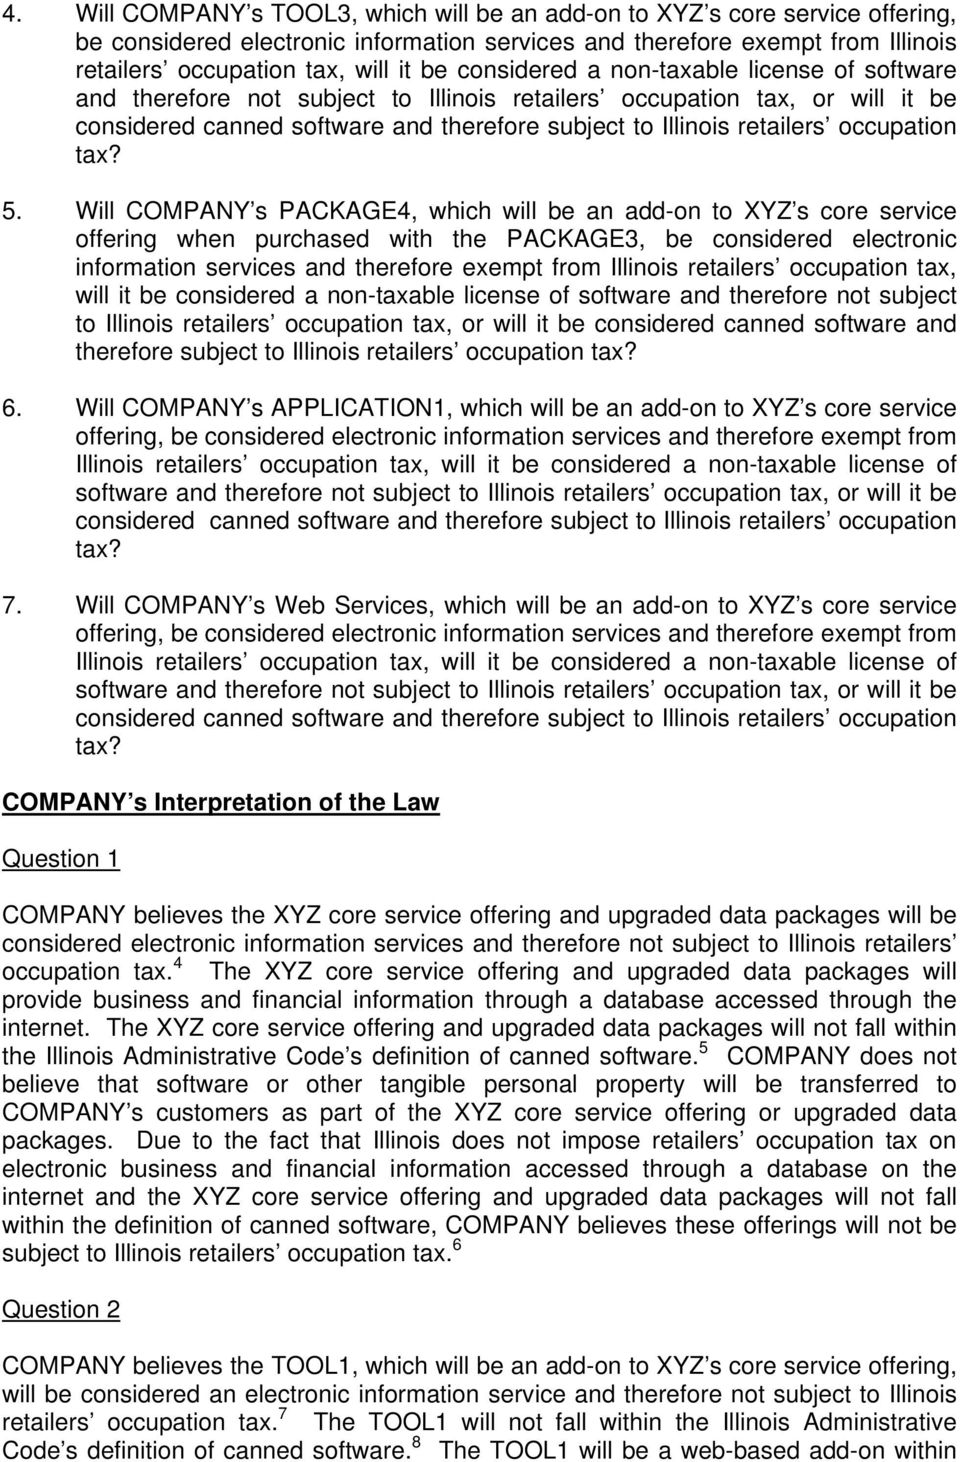 Will COMPANY s PACKAGE4, which will be an add-on to XYZ s core service offering when purchased with the PACKAGE3, be considered electronic information services and therefore exempt from Illinois